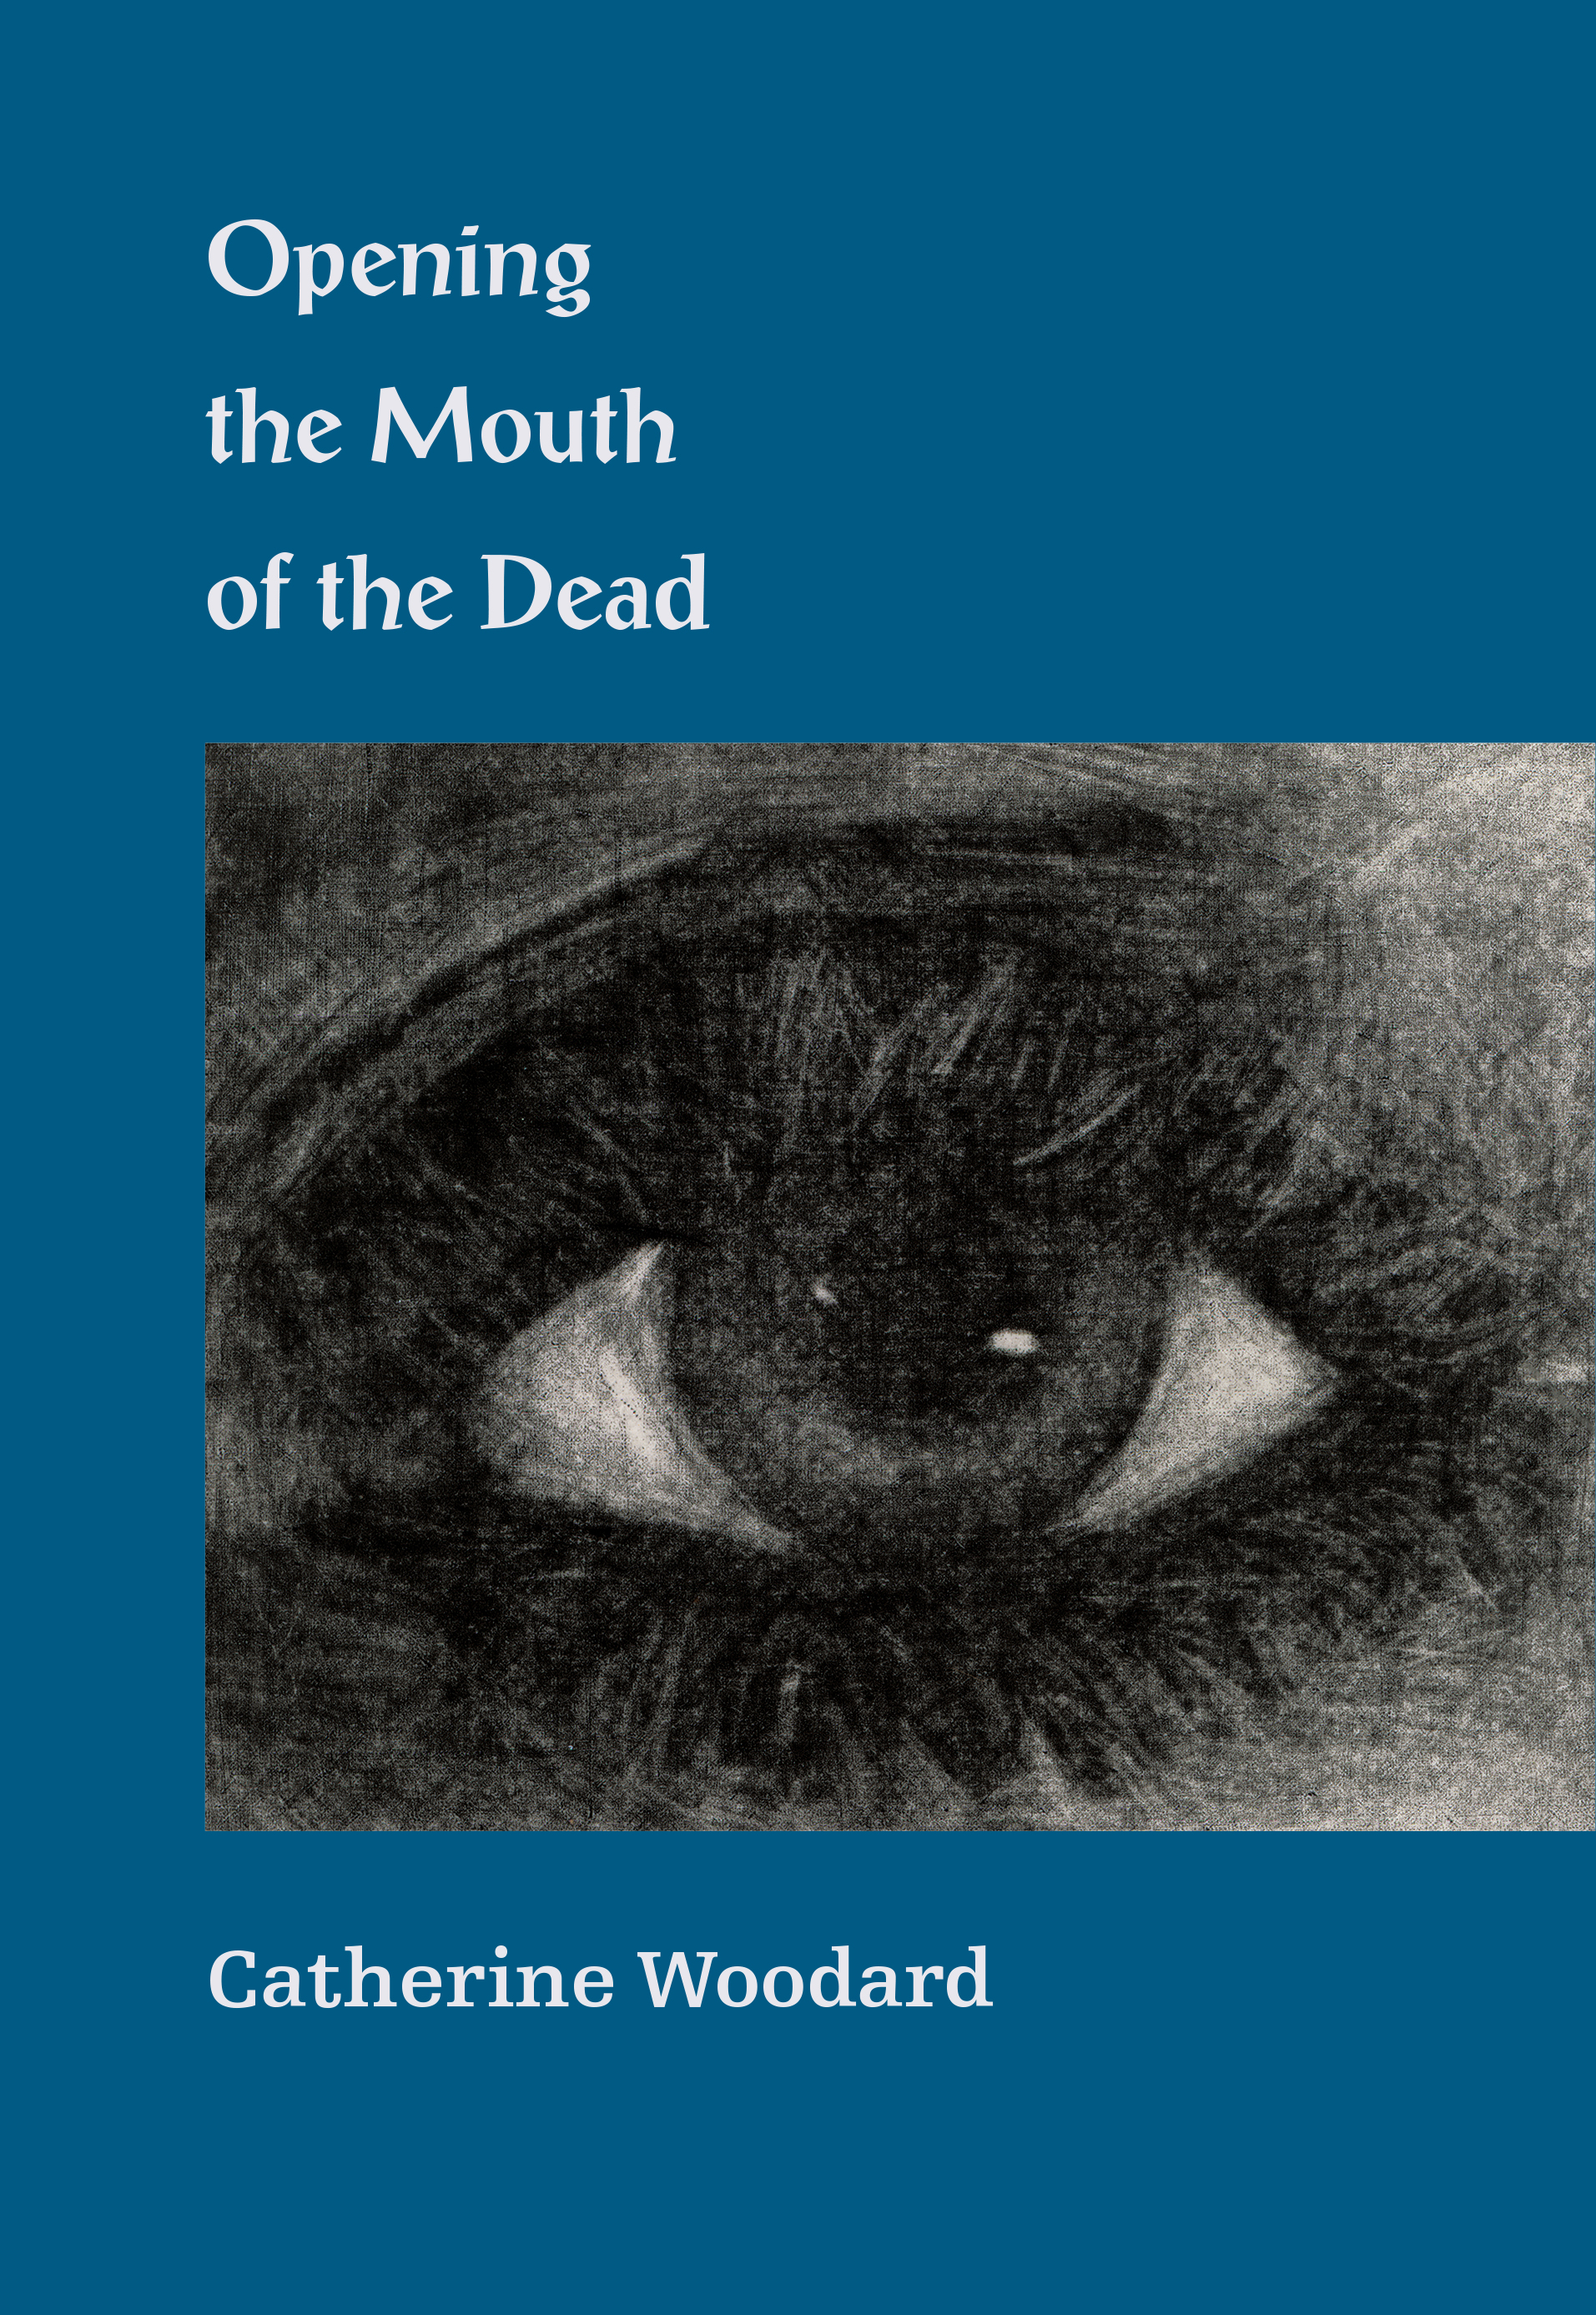 Opening the Mouth of the Dead